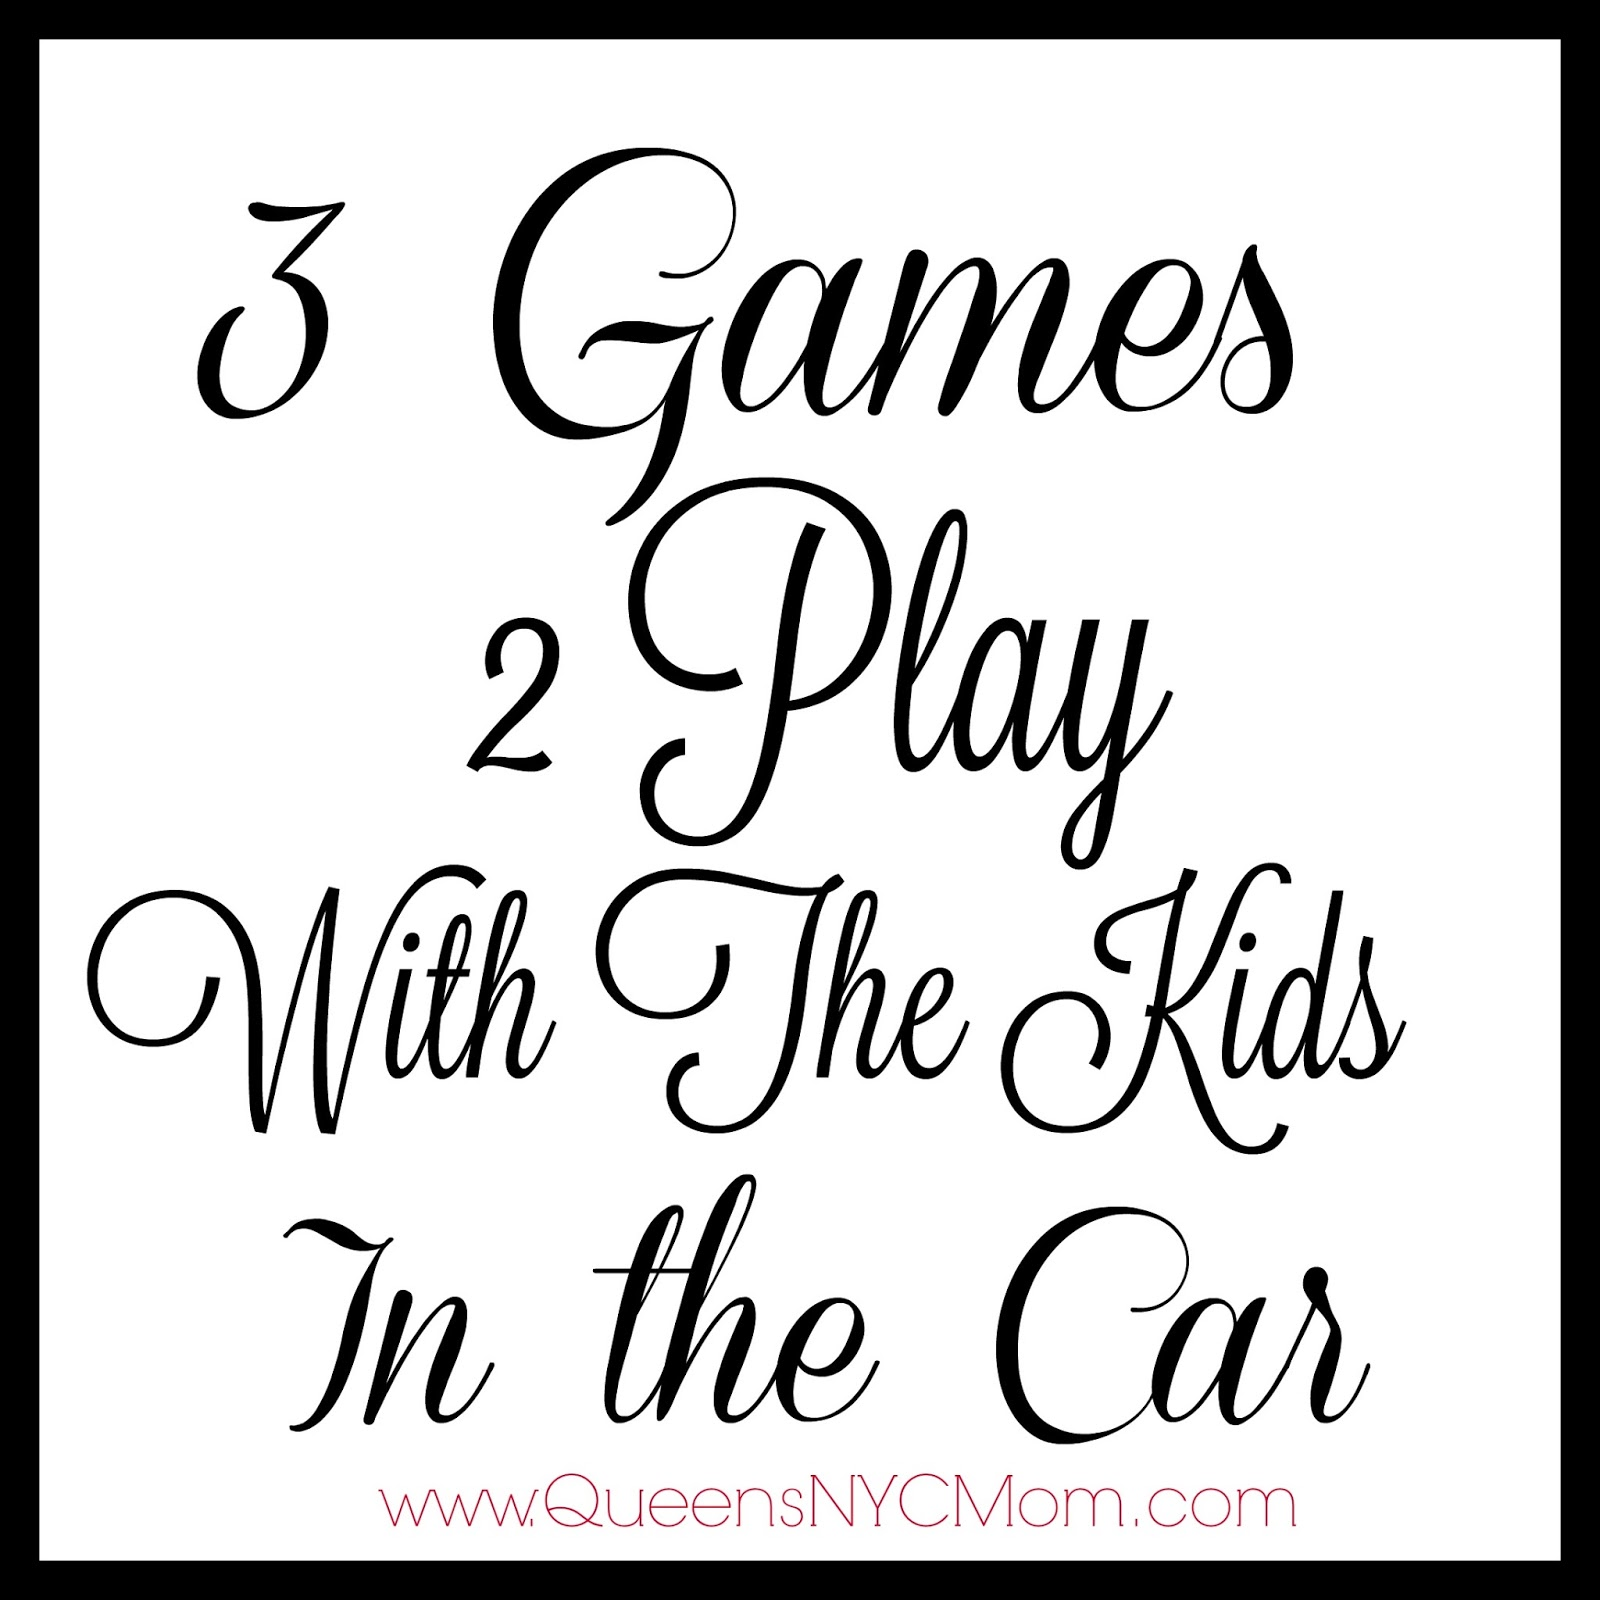 what parent hasnt heard theyre kids say to them are we there yet i know i have many times i decided to play a game with my kids that taught them about